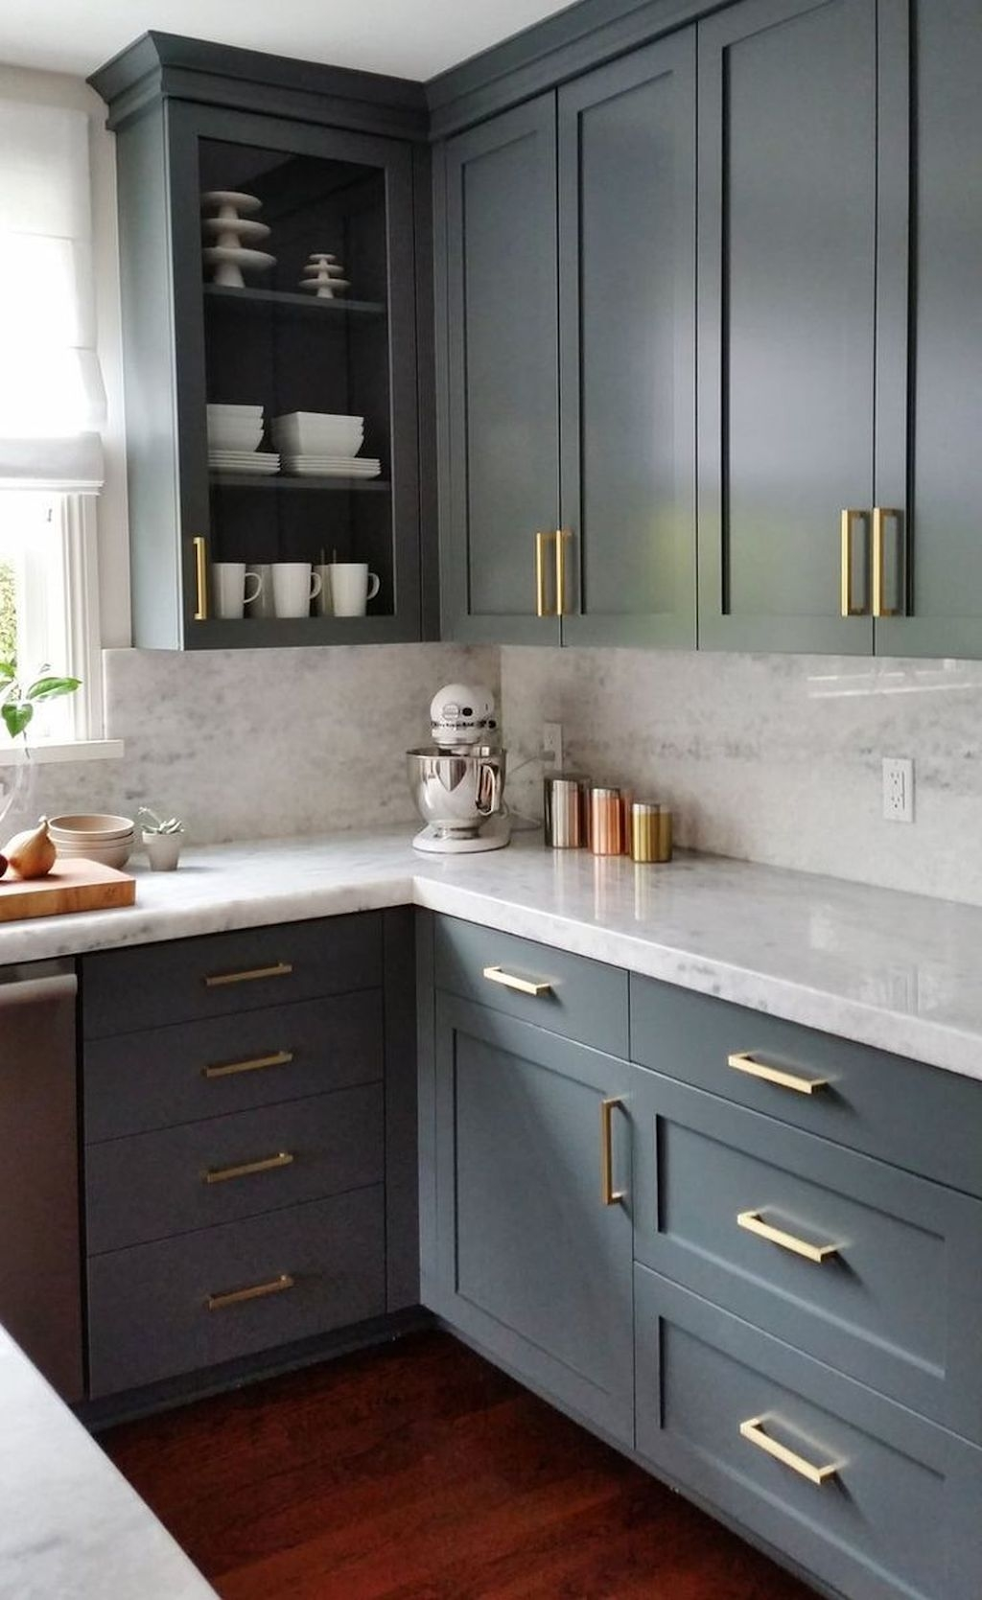 dark grey shaker cabinets with gold hardware pulls and marble countertops backsplash